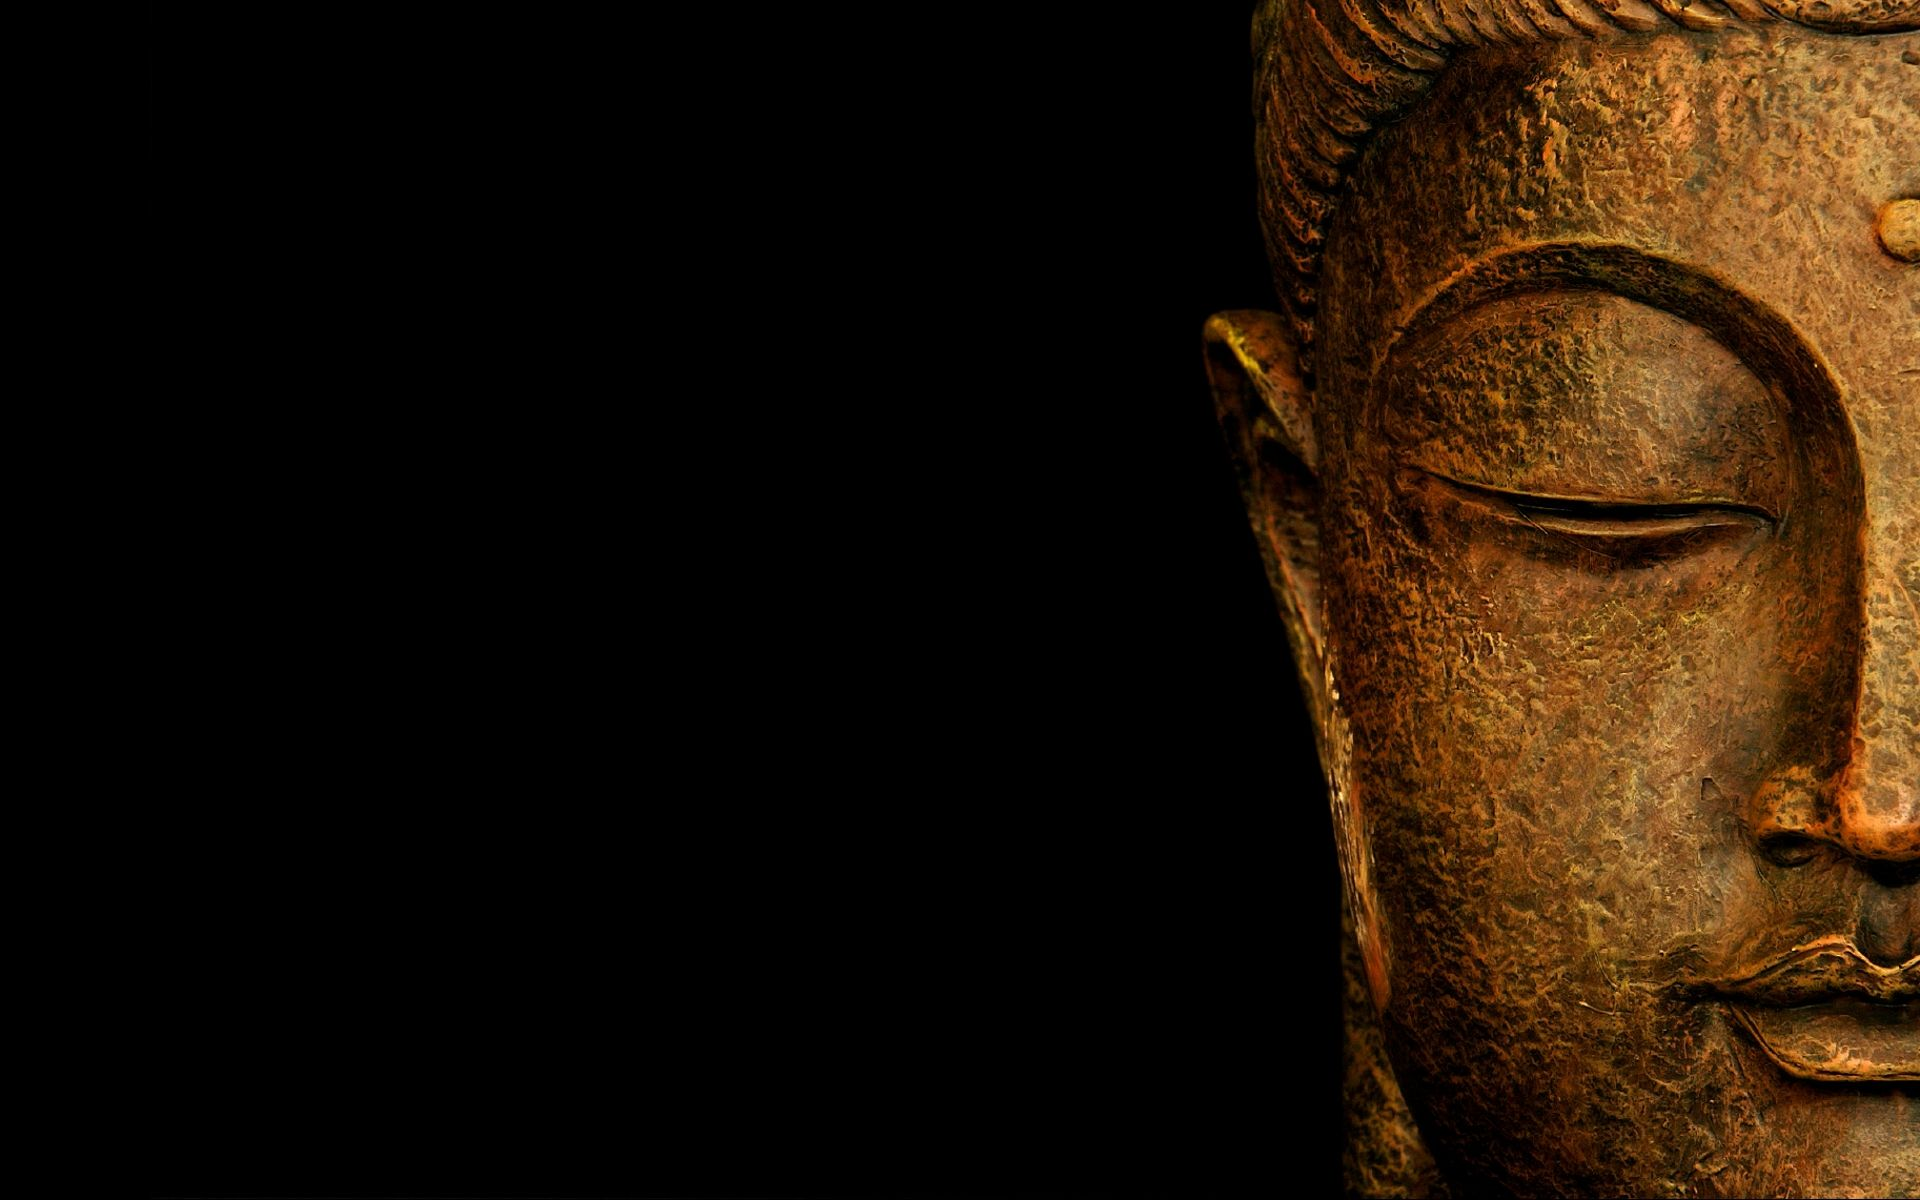 1920x1200 Buddha Wallpaper - Geek Crunch Reviews